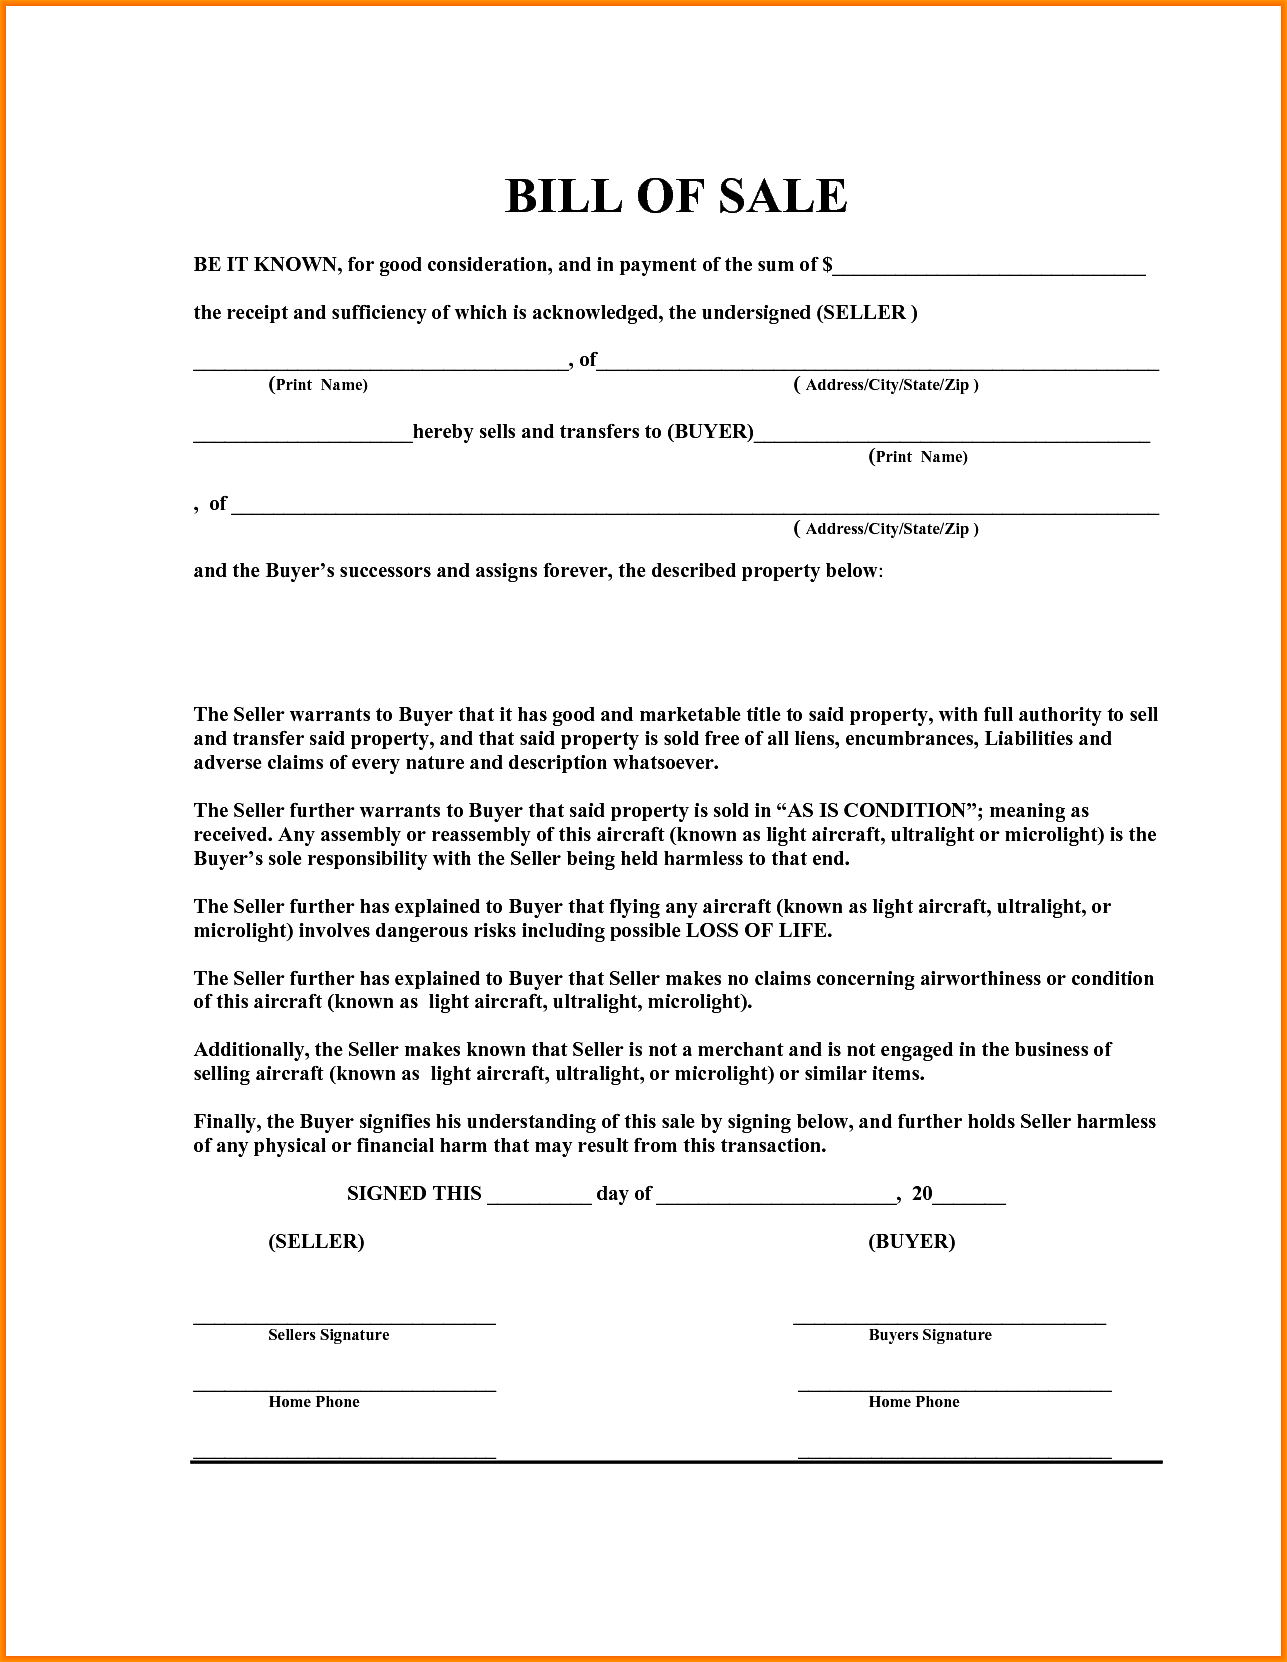 Blank boat Bill of Sale Template in PDF